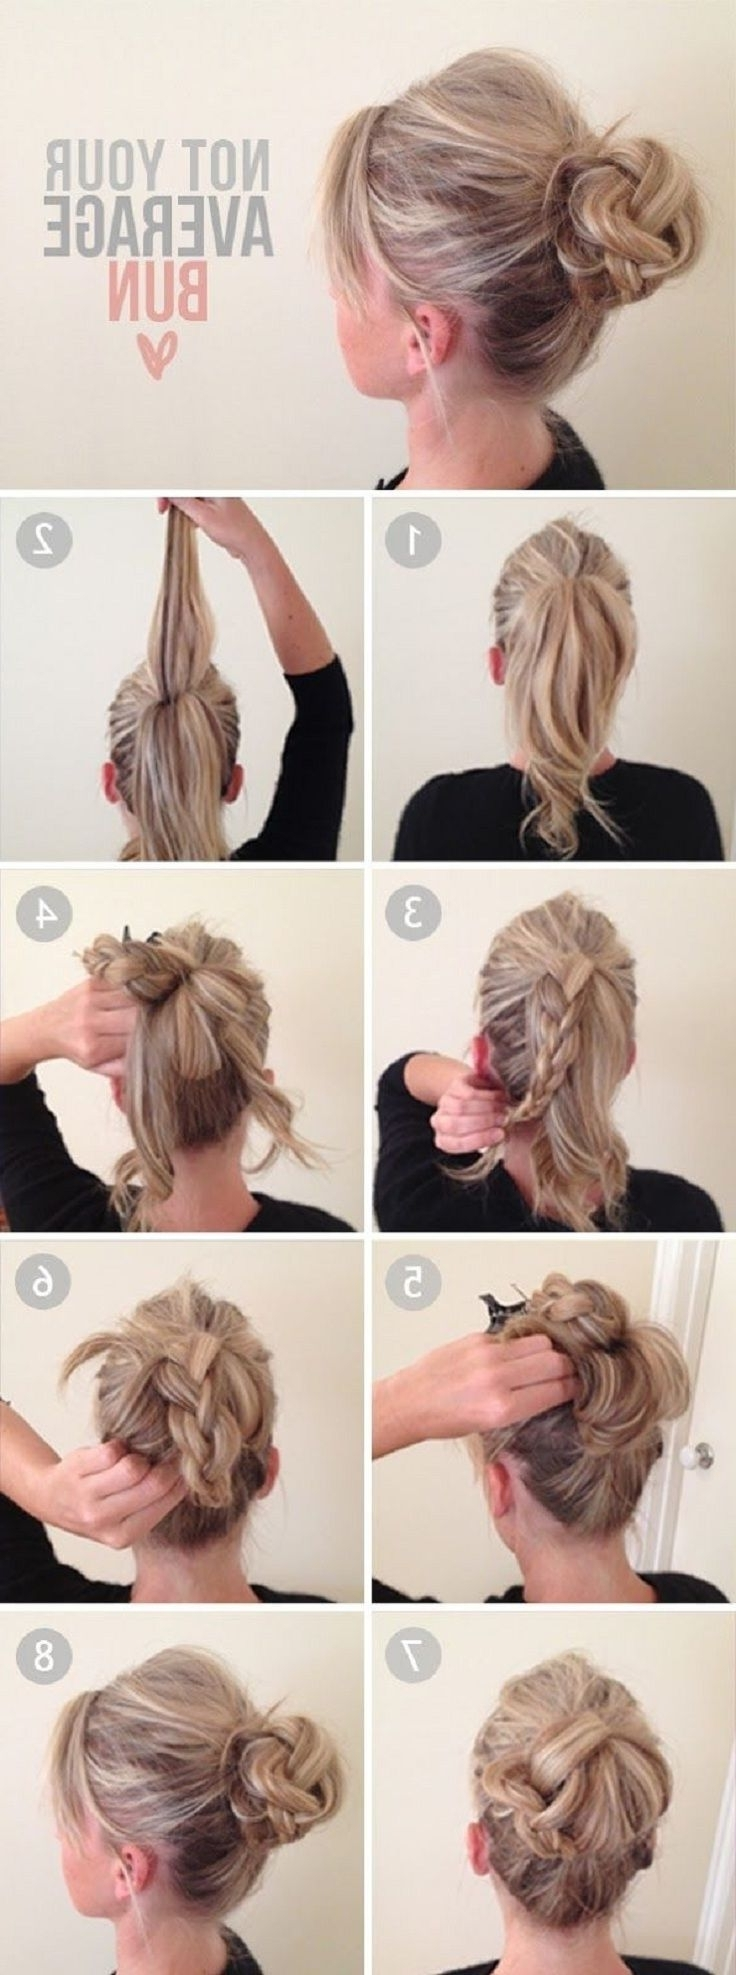 Newest Messy Double Braid Ponytail Hairstyles In 14 Amazing Double Braid Bun Hairstyles – Pretty Designs (View 5 of 20)